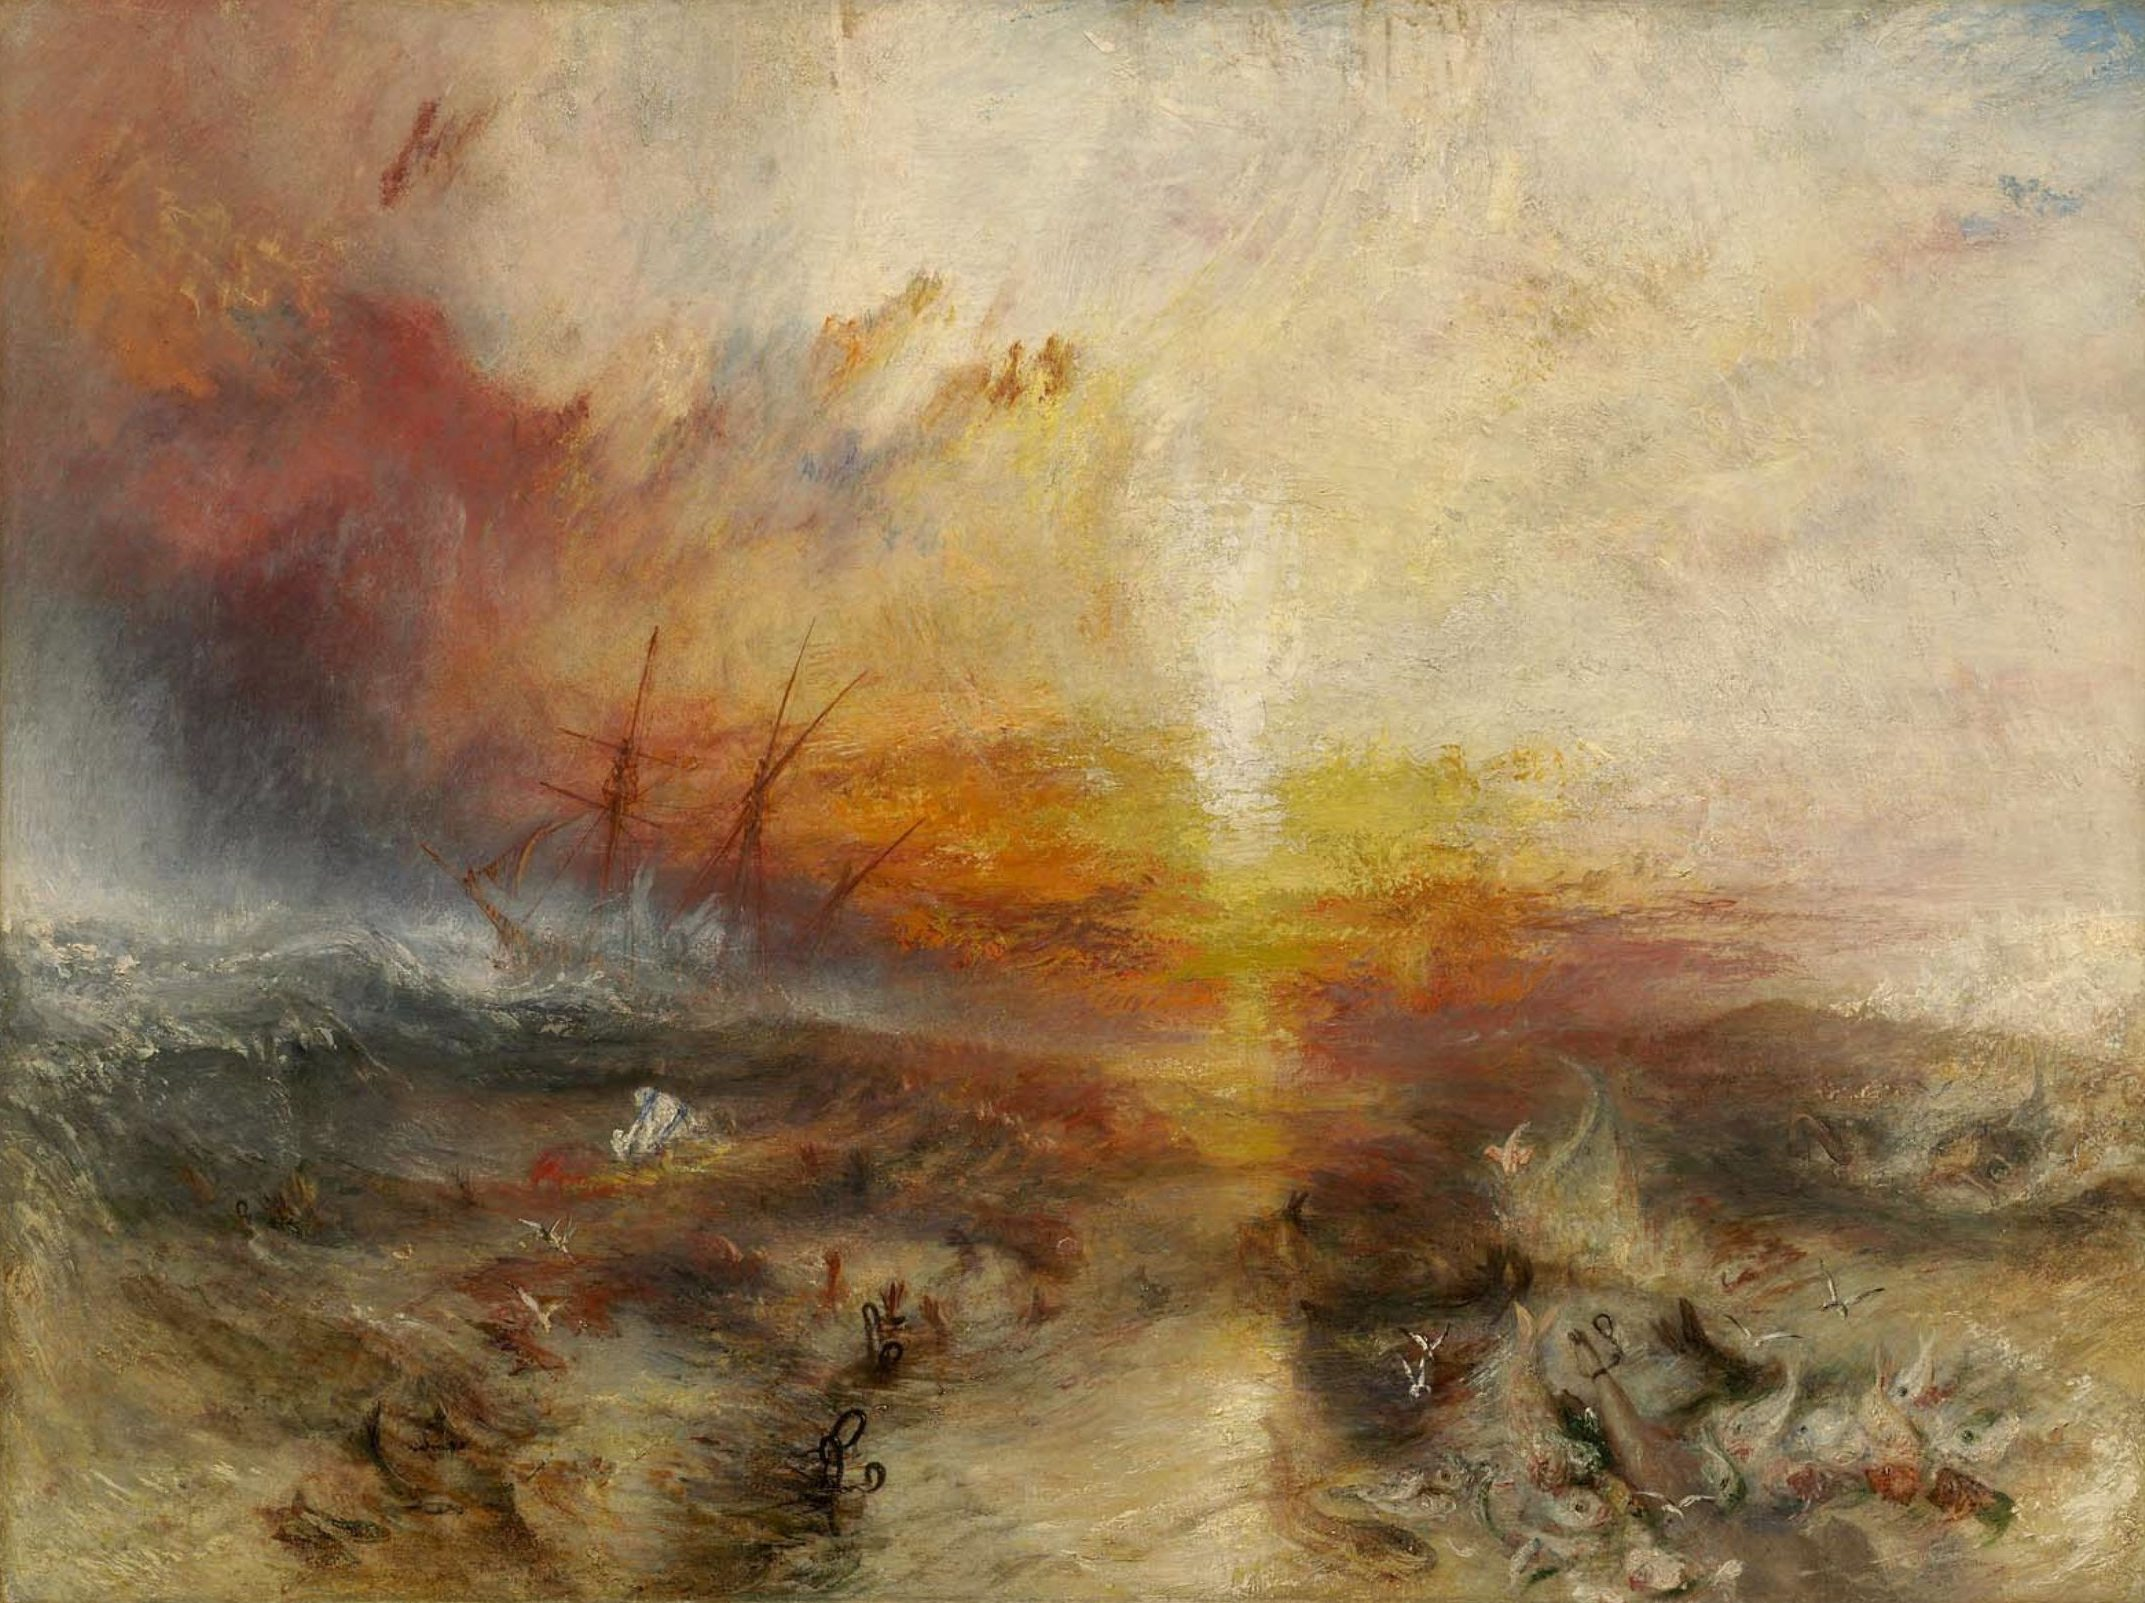 William TURNER - The Slave Ship, love, sun, insight, coaching